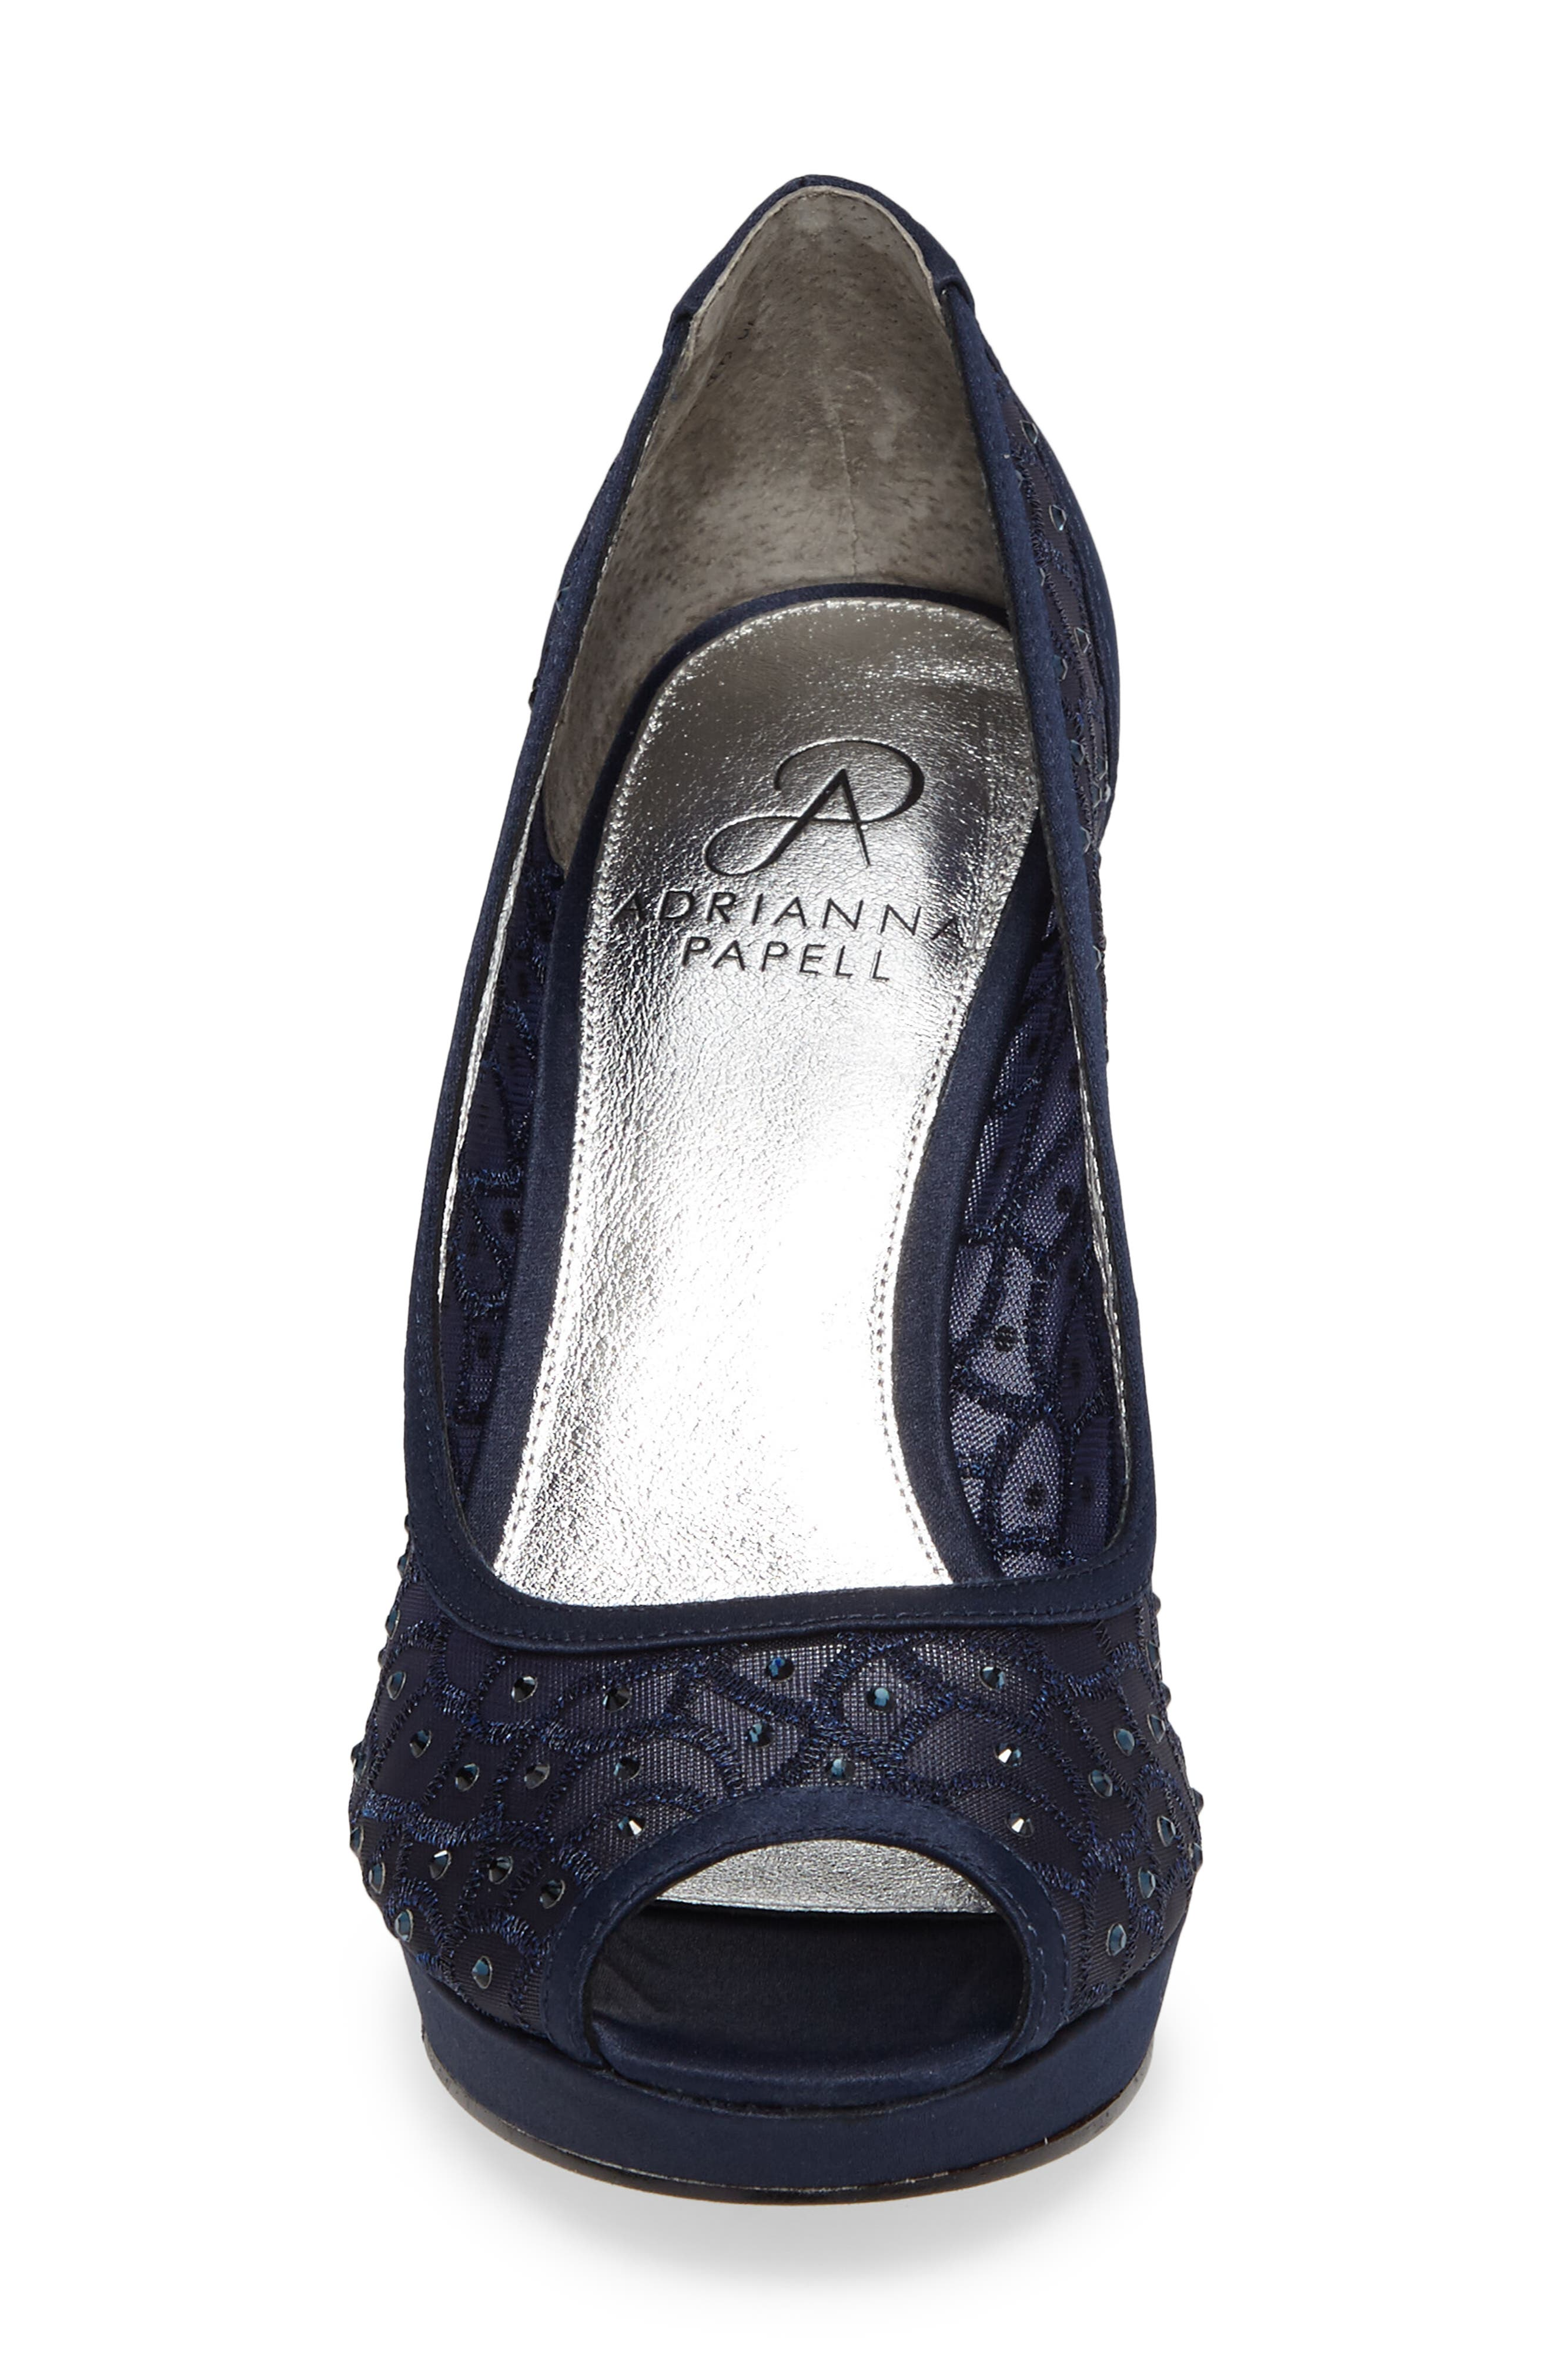 'Foxy' Crystal Embellished Peeptoe Pump,                             Alternate thumbnail 4, color,                             NAVY SATIN